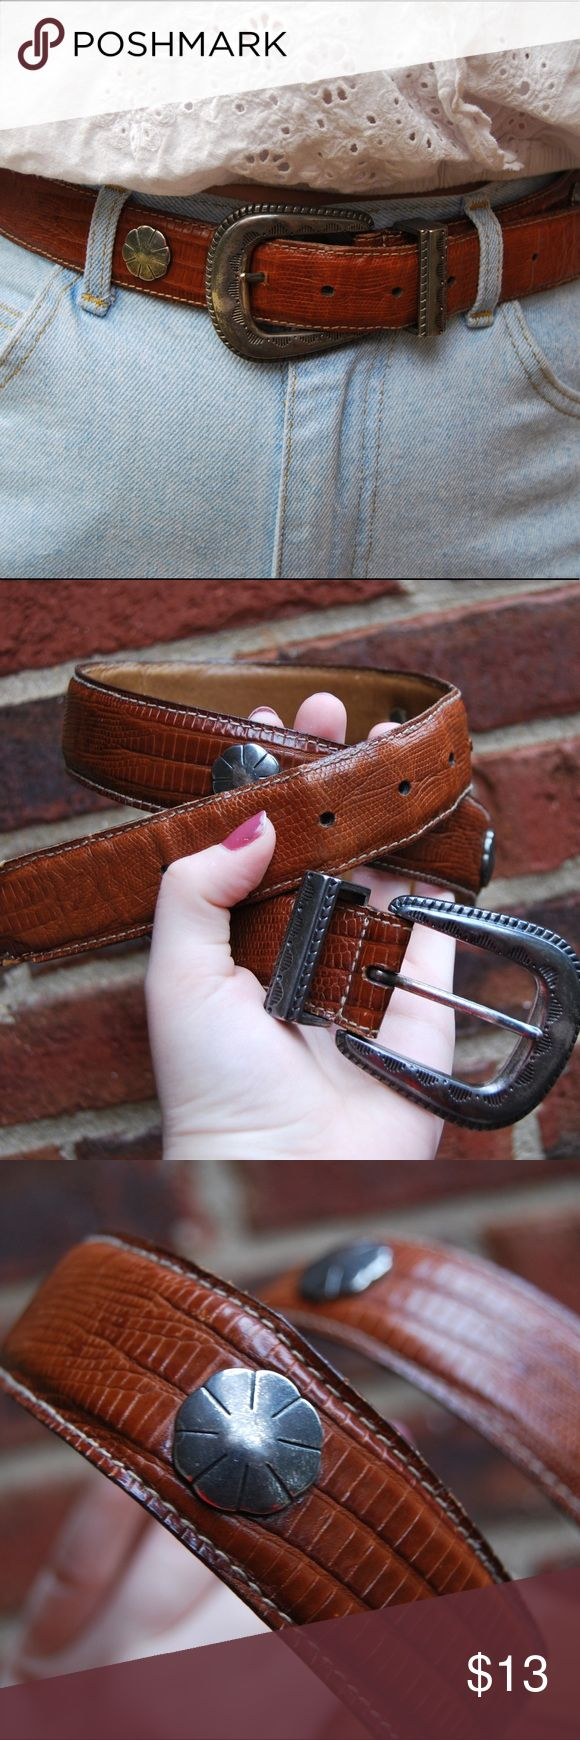 "Gap Girl Genuine leather vintage gap belt. This western style belt is super cool, and makes any outfit pop.  Size M/L, 34"" GAP Accessories Belts"